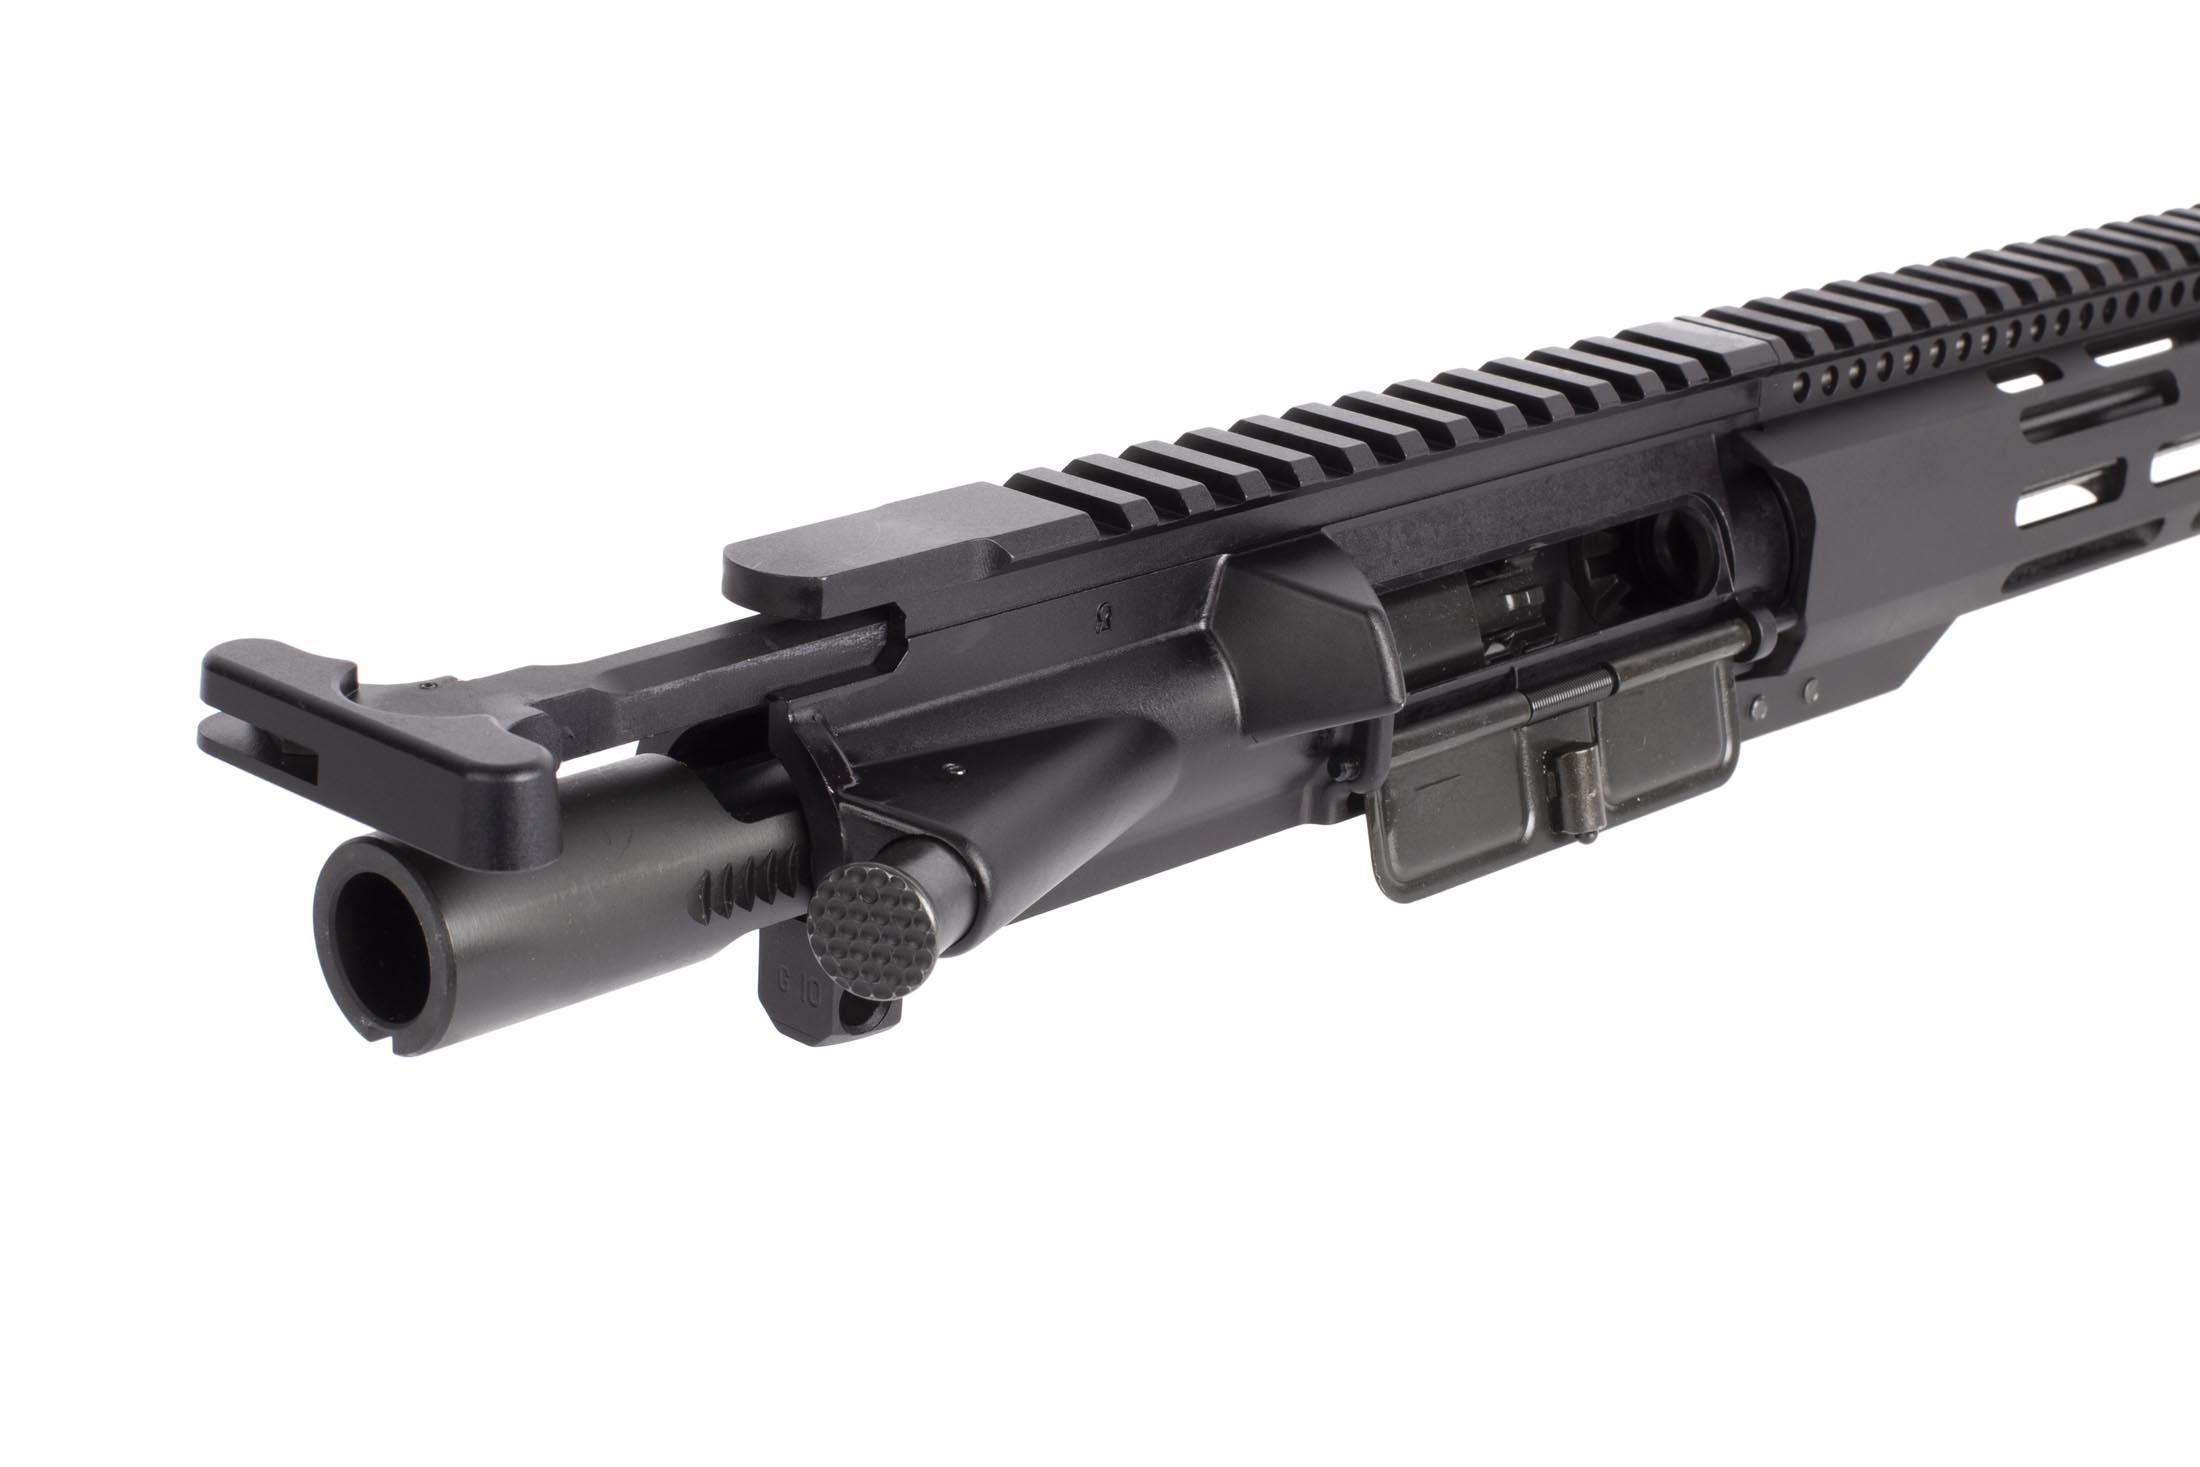 Radical Firearms complete 10.5in 5.56 NATO AR pistol upper with 1:7 twist includes M16 bolt carrier group and standard charging handle.